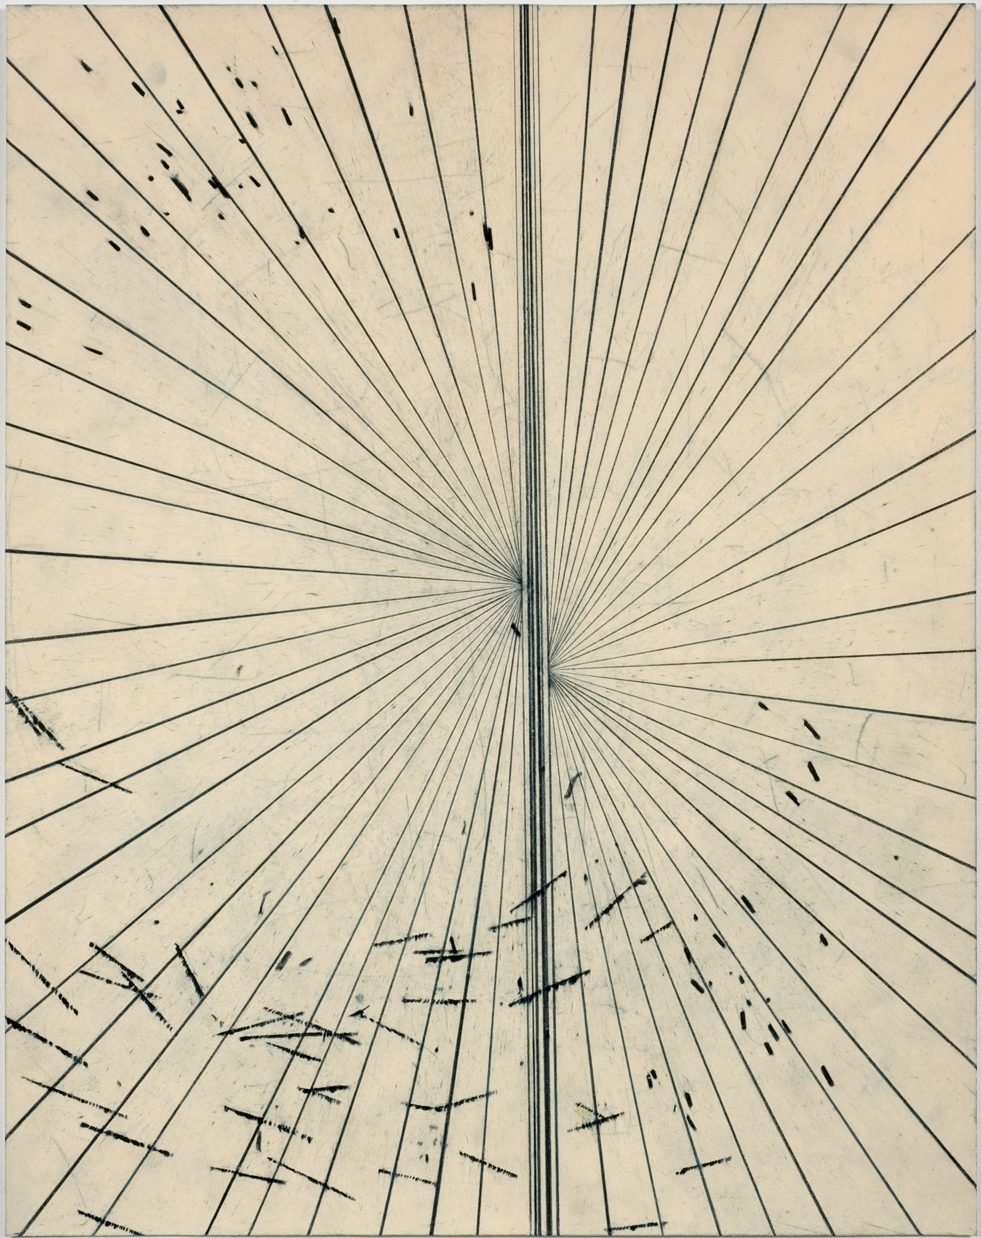 MARK GROTJAHN  Untiled, 2009  Colored pencil on paper  20 x 16 in  Courtesy of the artist